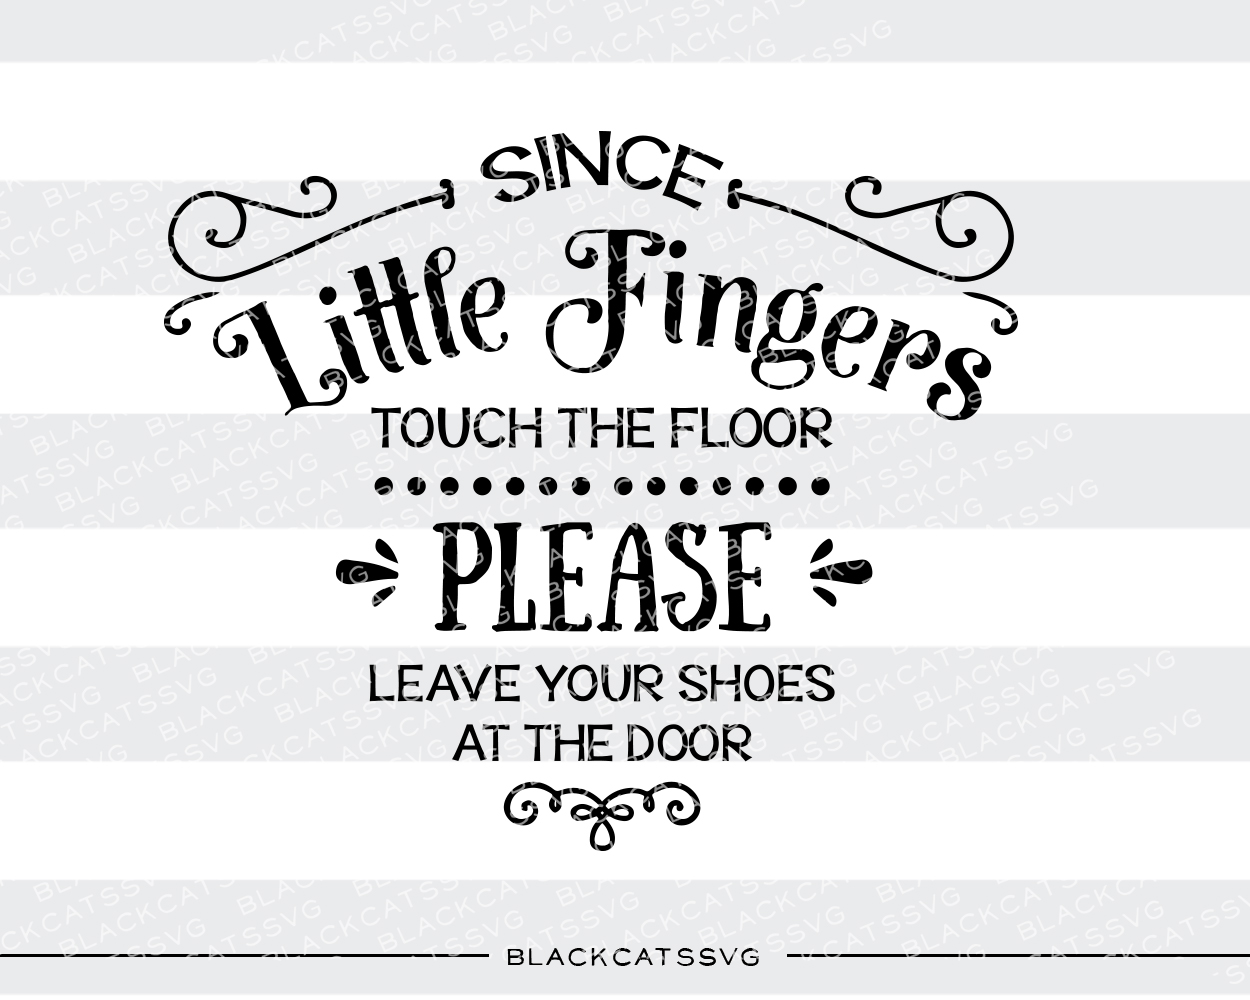 Since Little Fingers Touch the Floor - Please Leave Your Shoes at the Door Kids Craft Cut File By BlackCatsSVG